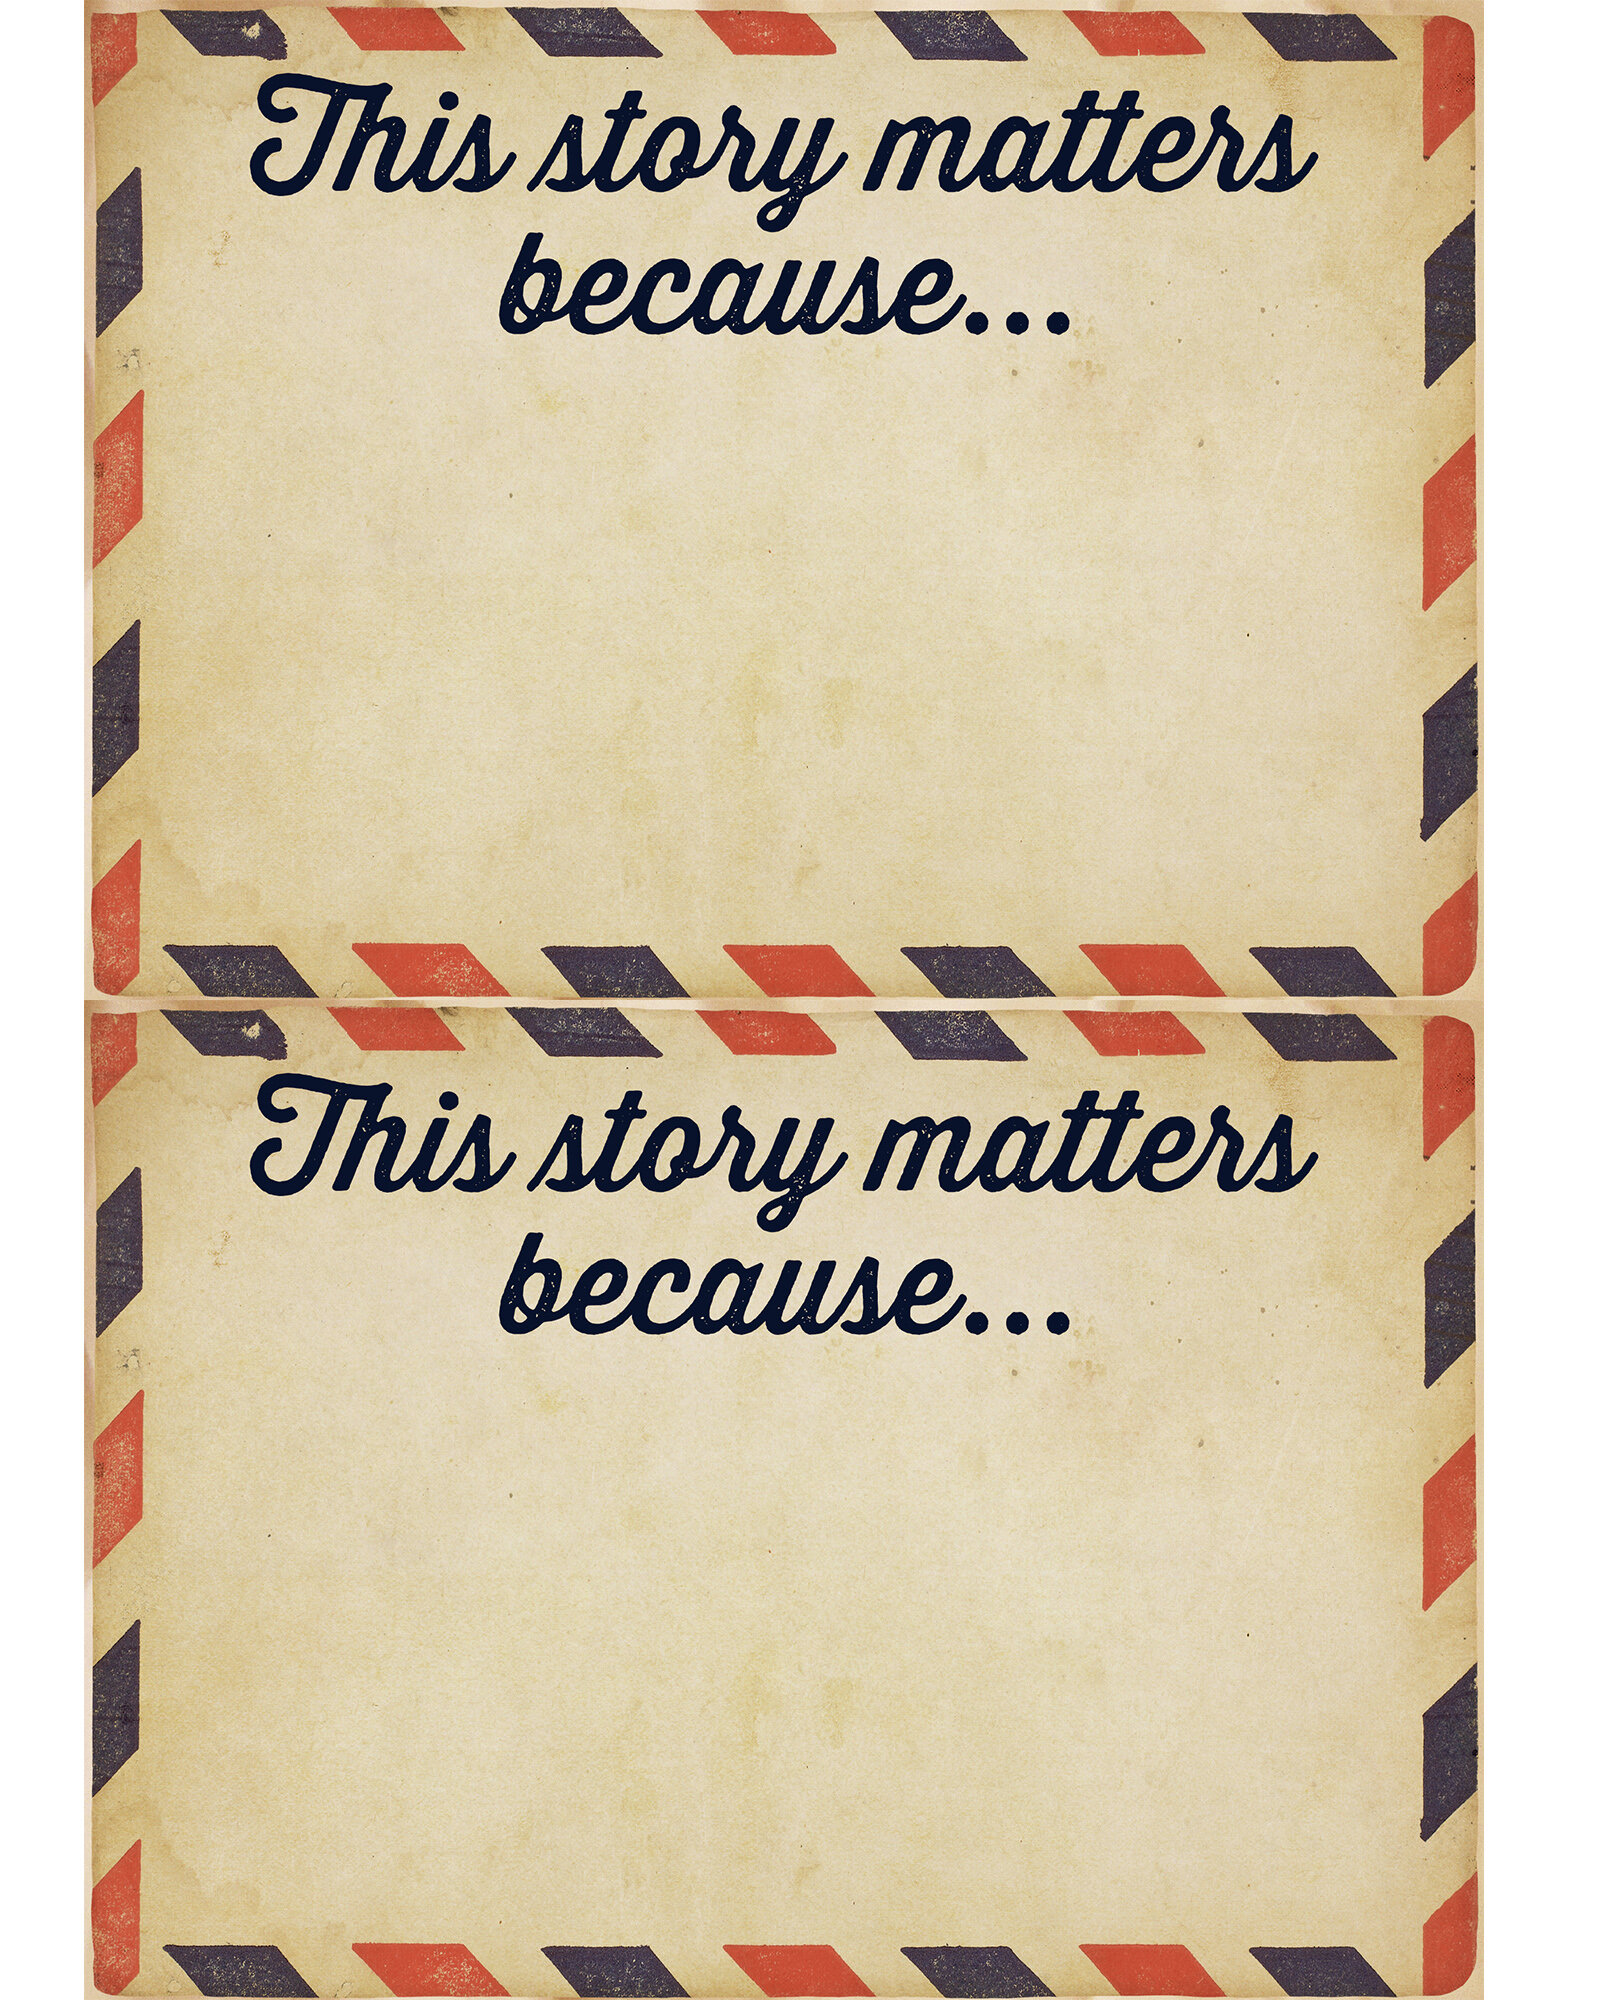 104. This Story Matters Art_2PerPage.jpg